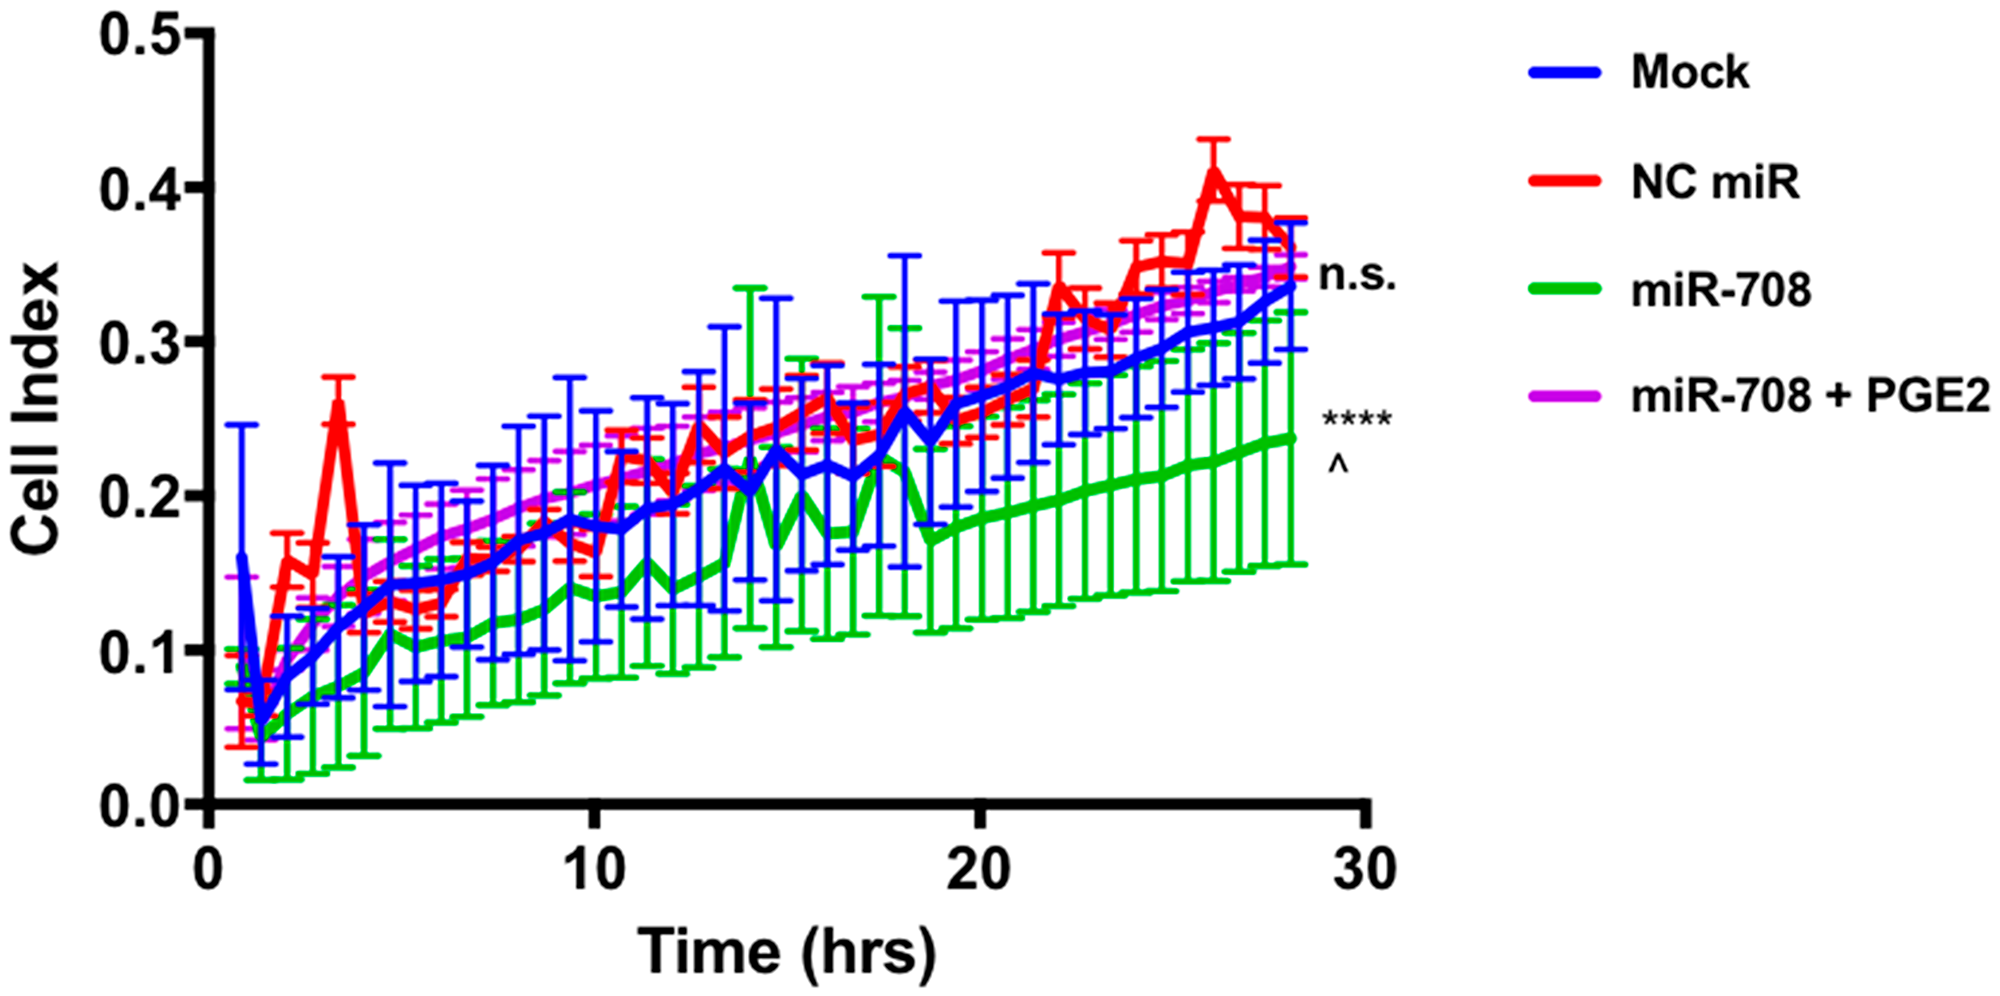 miR-708 reduction of A549 cellular migration is mediated through the AA signaling pathway.